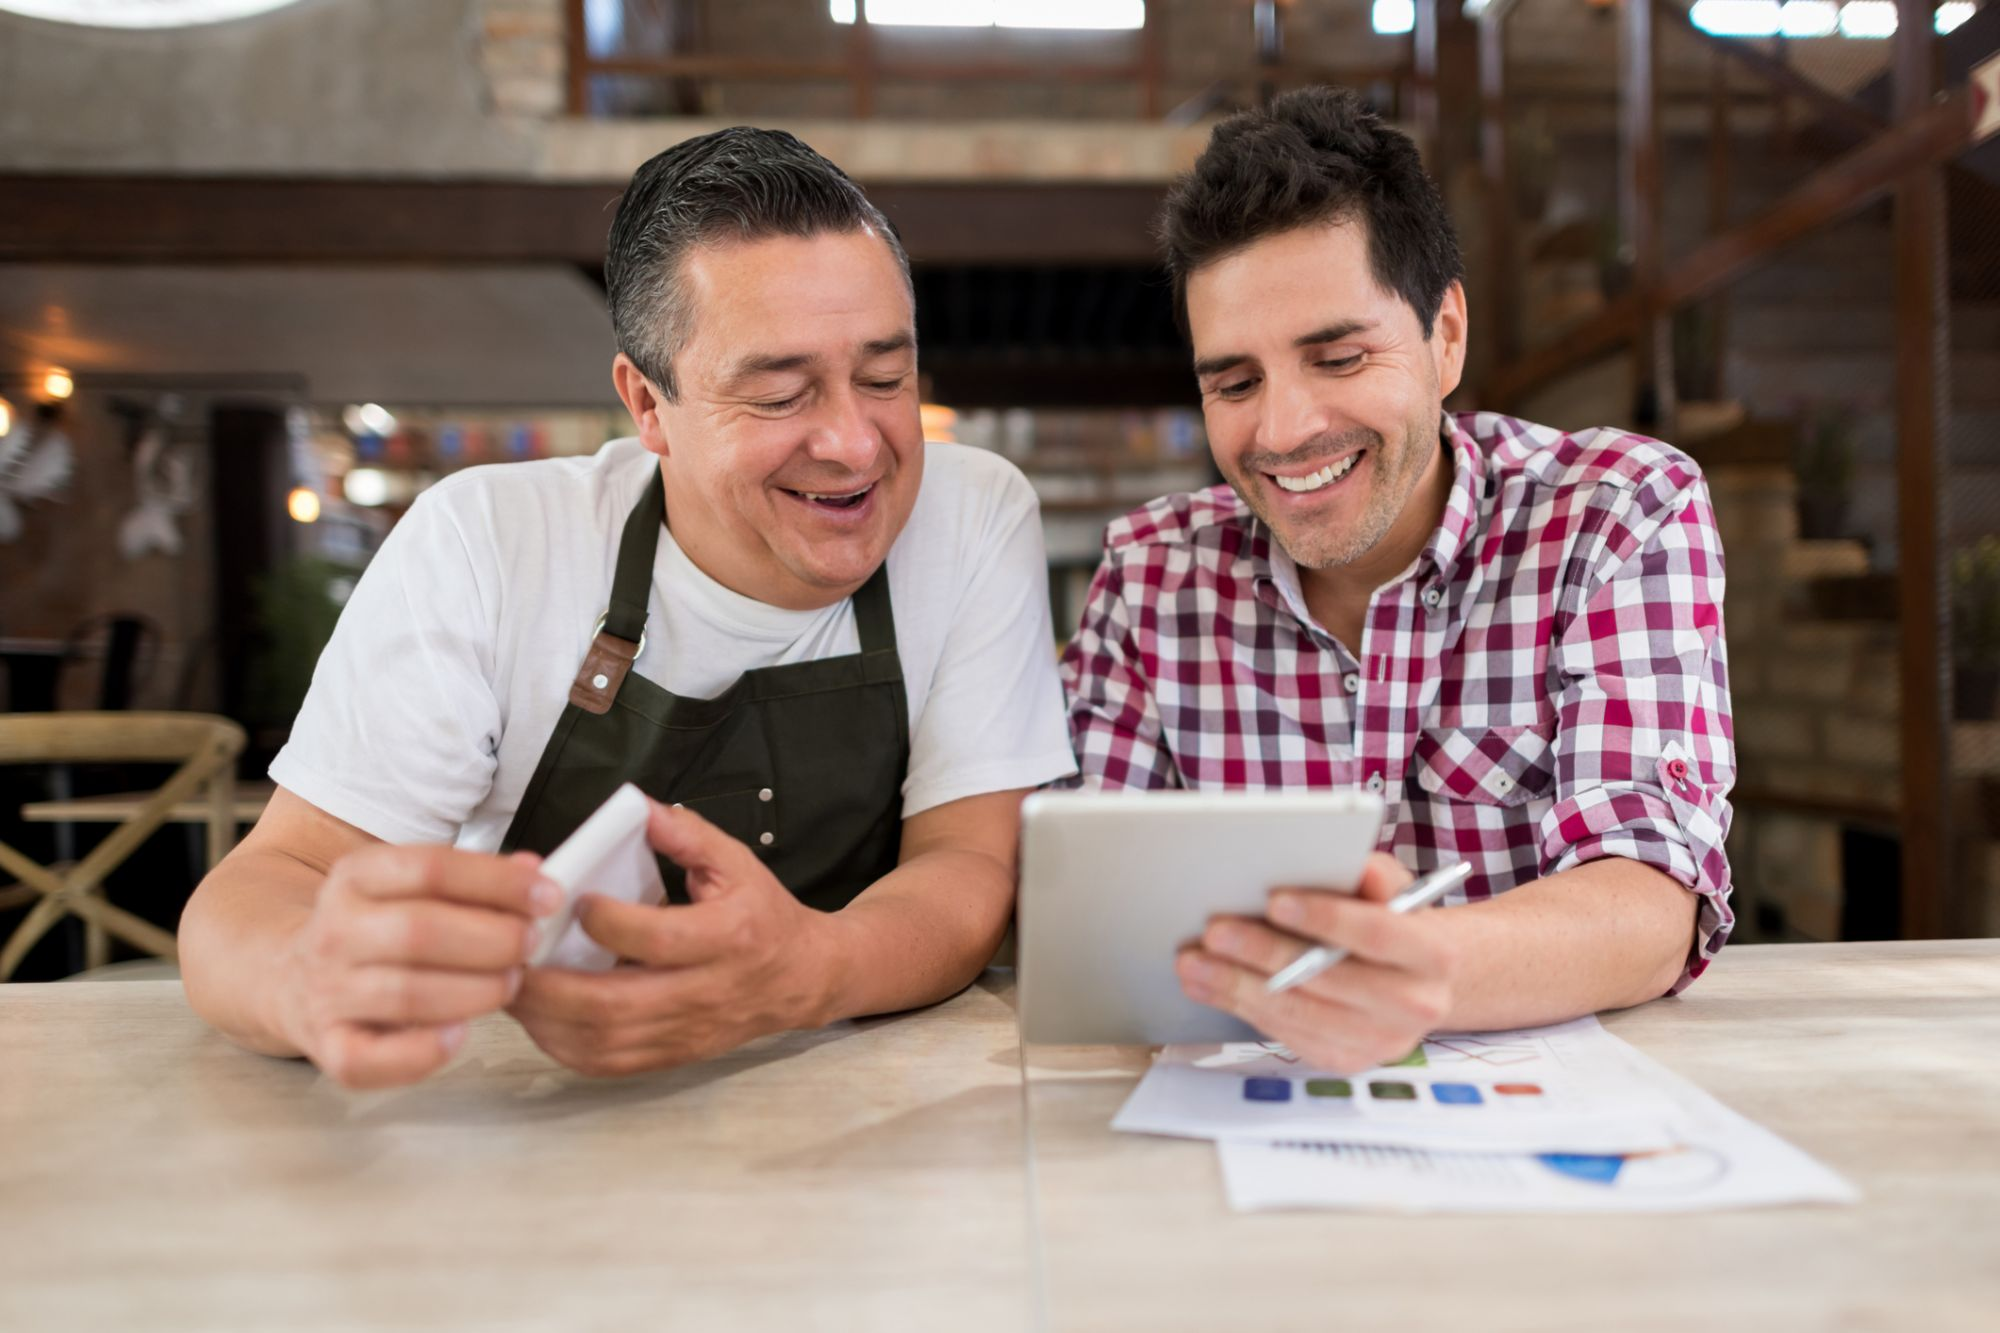 5 Keys to Successfully Leading a Family Business